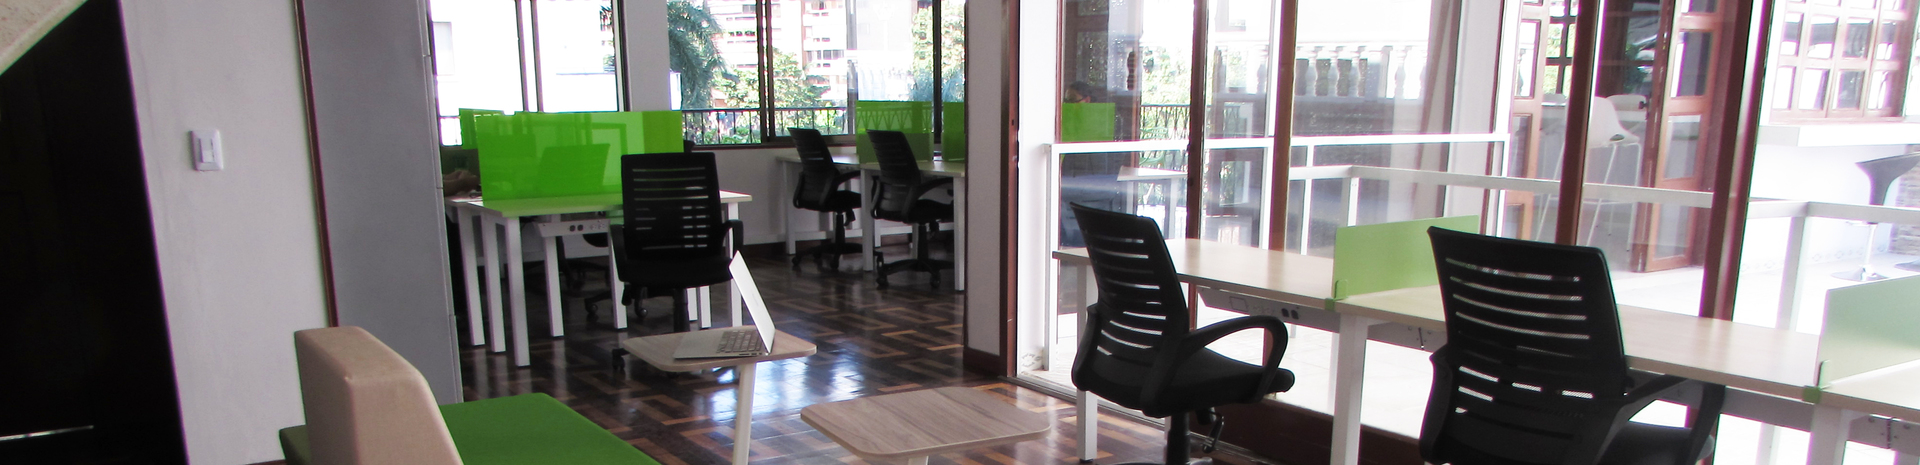 RioCowork, Cali - Read Reviews & Book Online